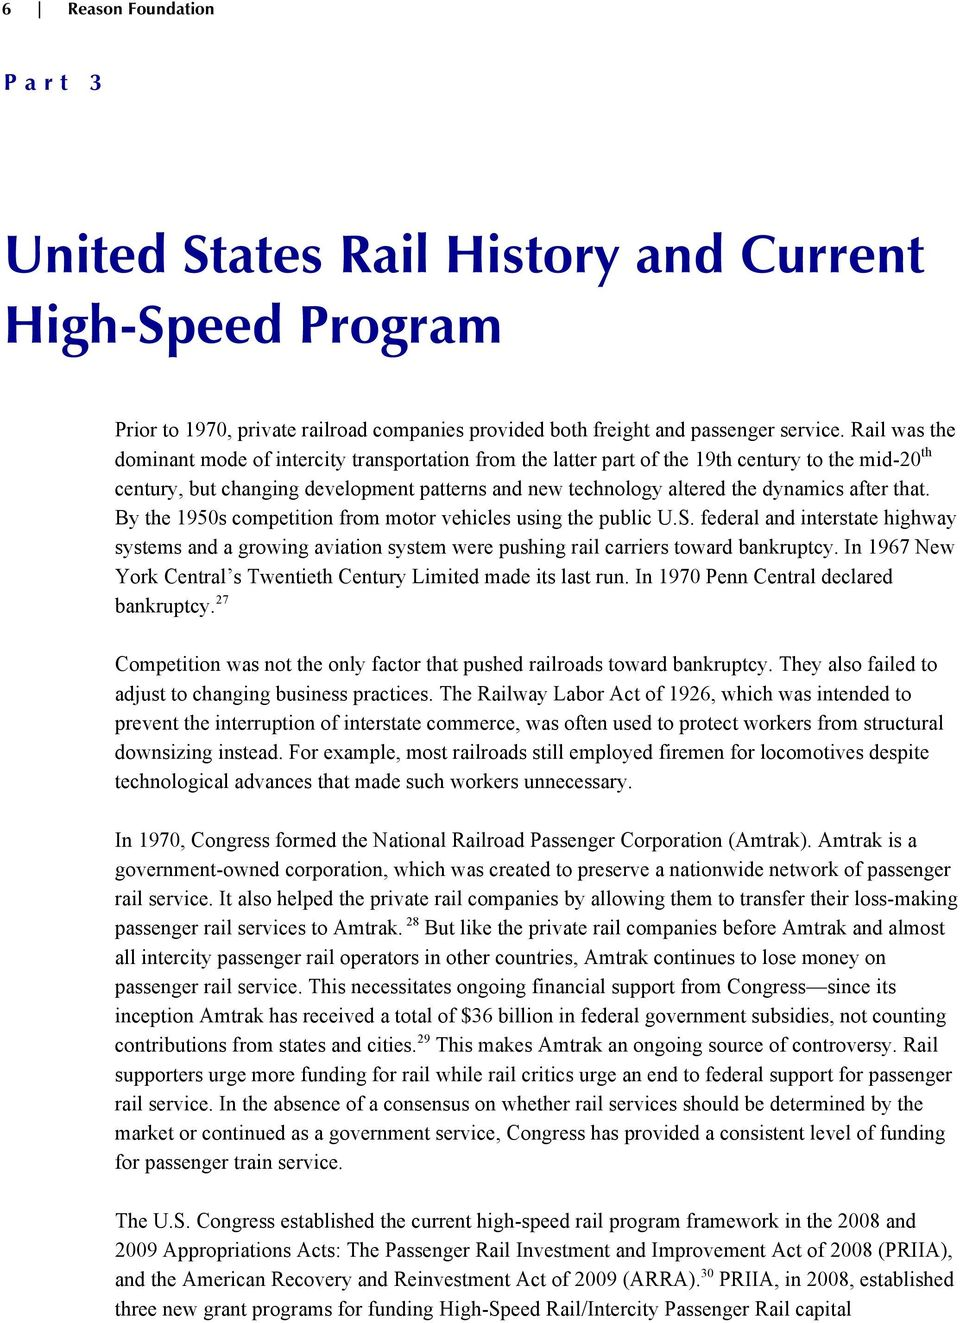 after that. By the 1950s competition from motor vehicles using the public U.S. federal and interstate highway systems and a growing aviation system were pushing rail carriers toward bankruptcy.